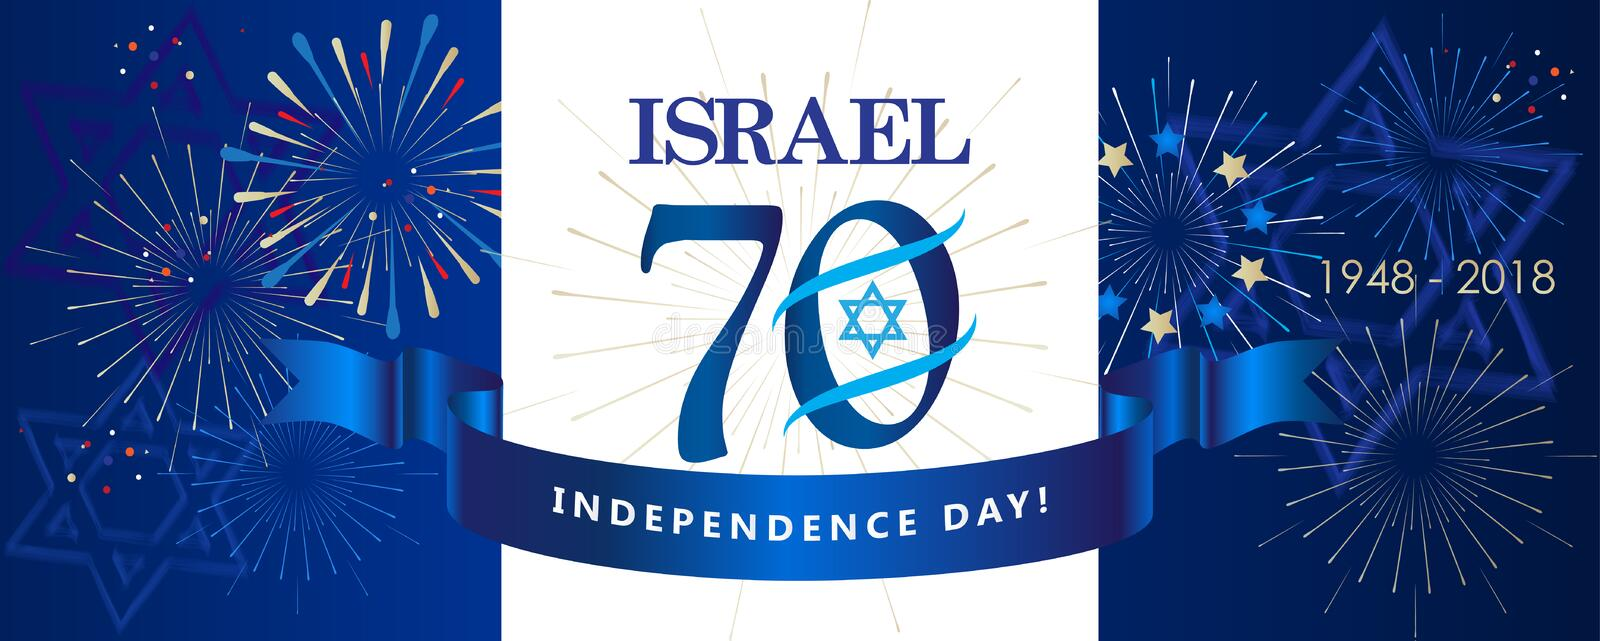 Israel 70 Independence Day royalty free illustration